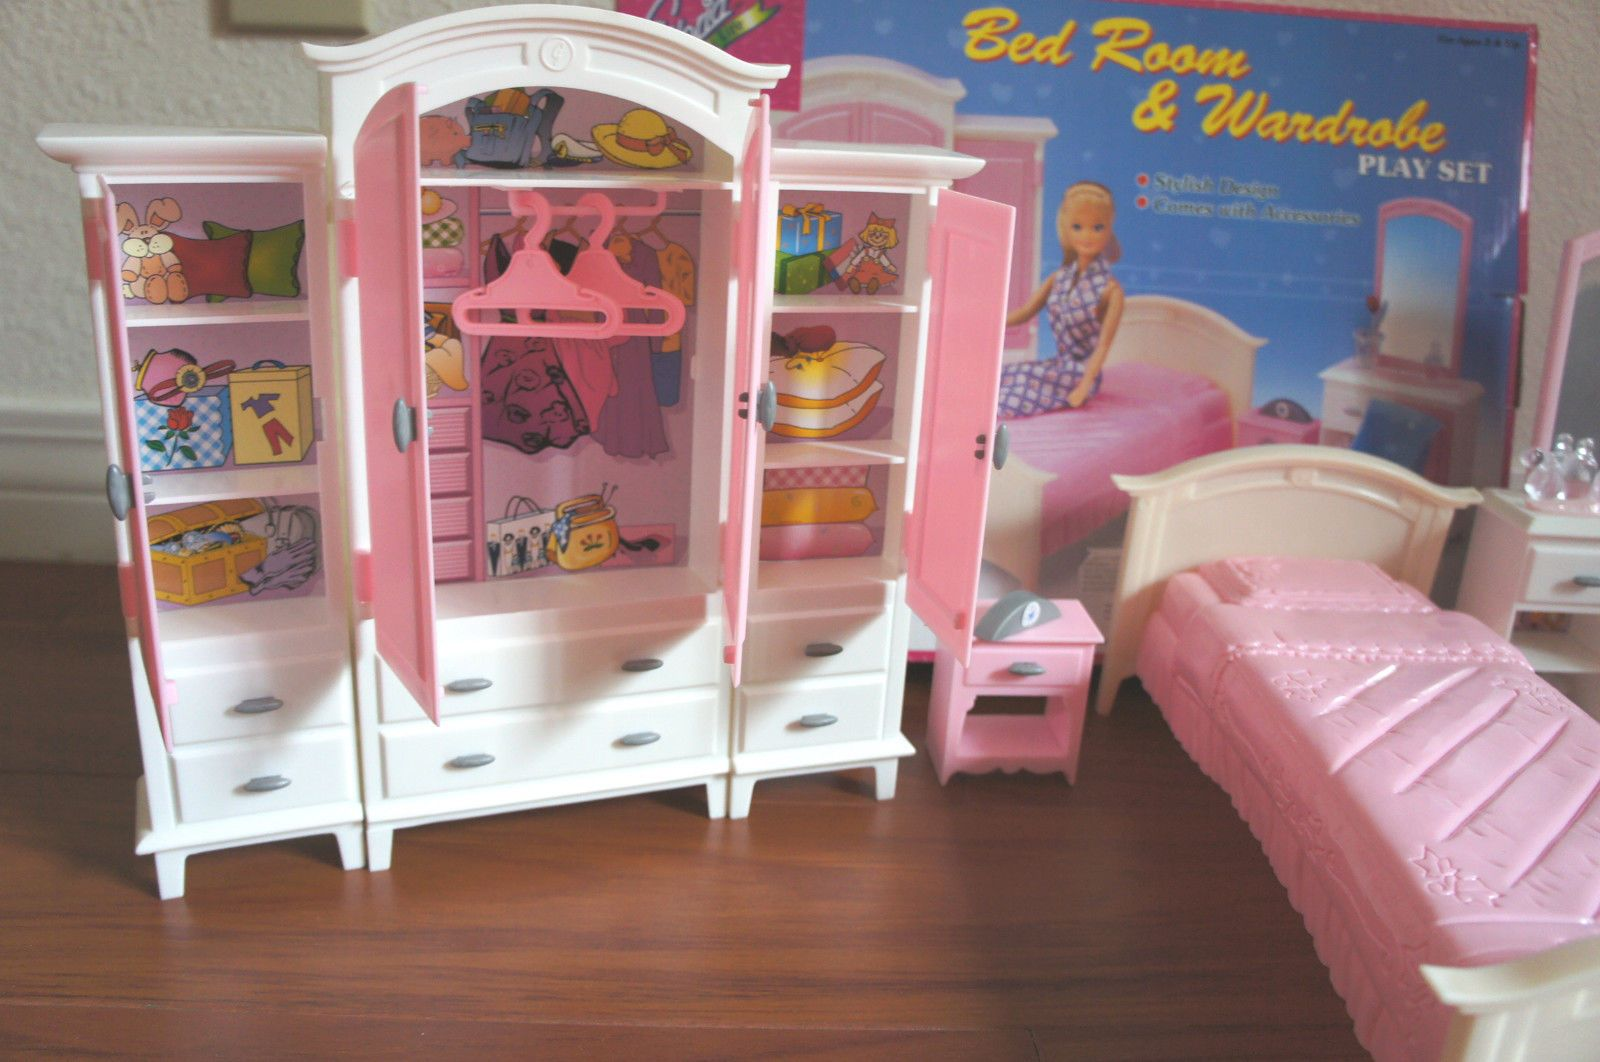 GLORIA FURNITURE BEDROOM & WARDROBE MIRROR PLAY SET DOLL HOUSE For ...